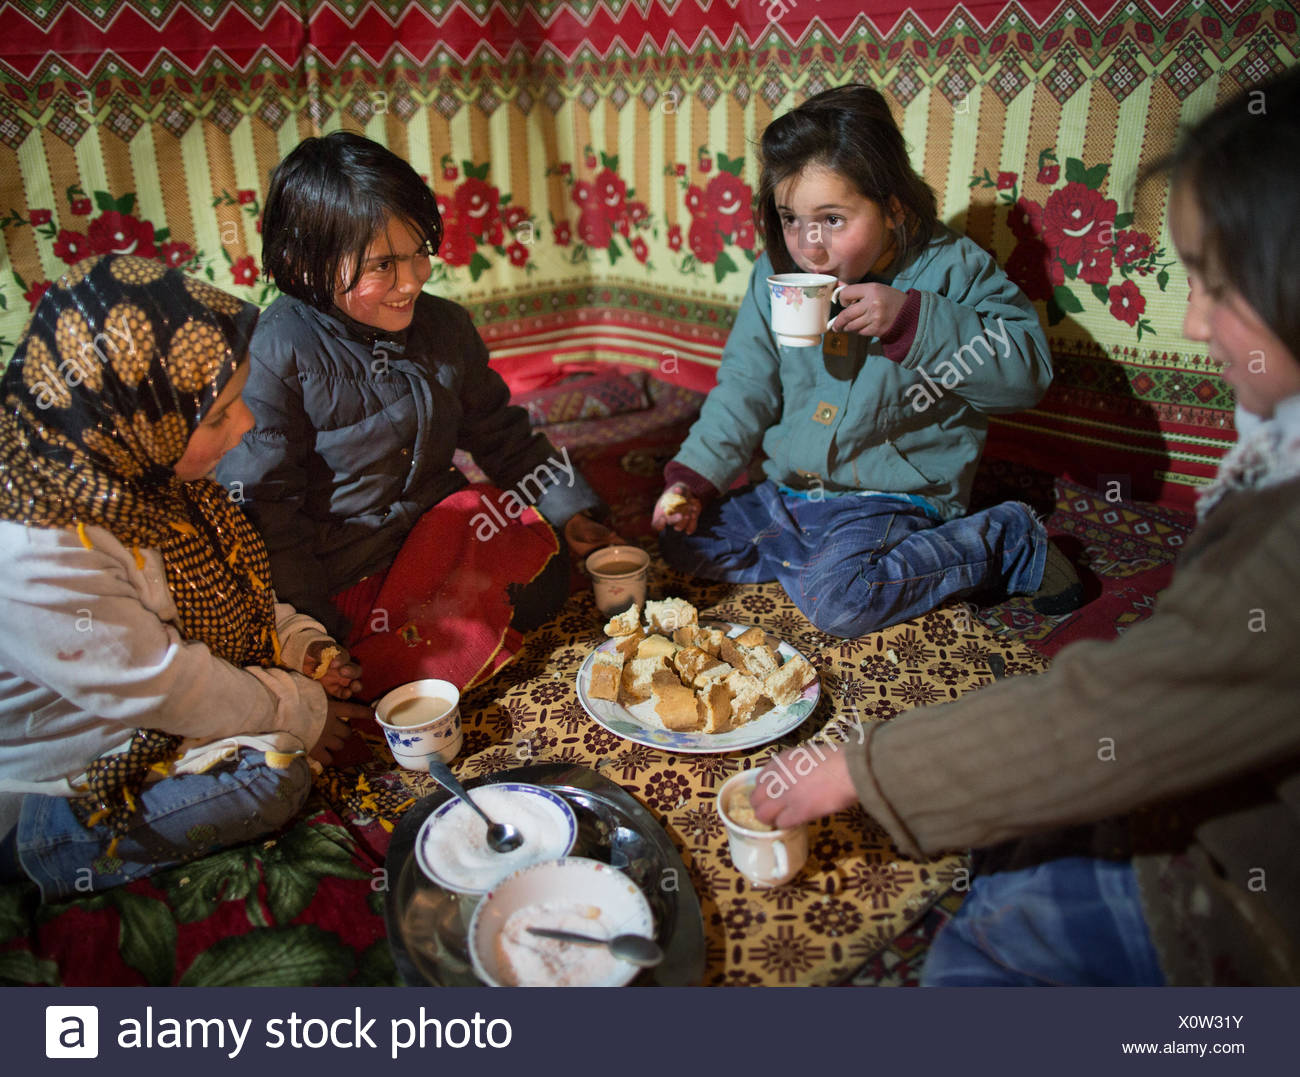 Eating together. - Stock Image